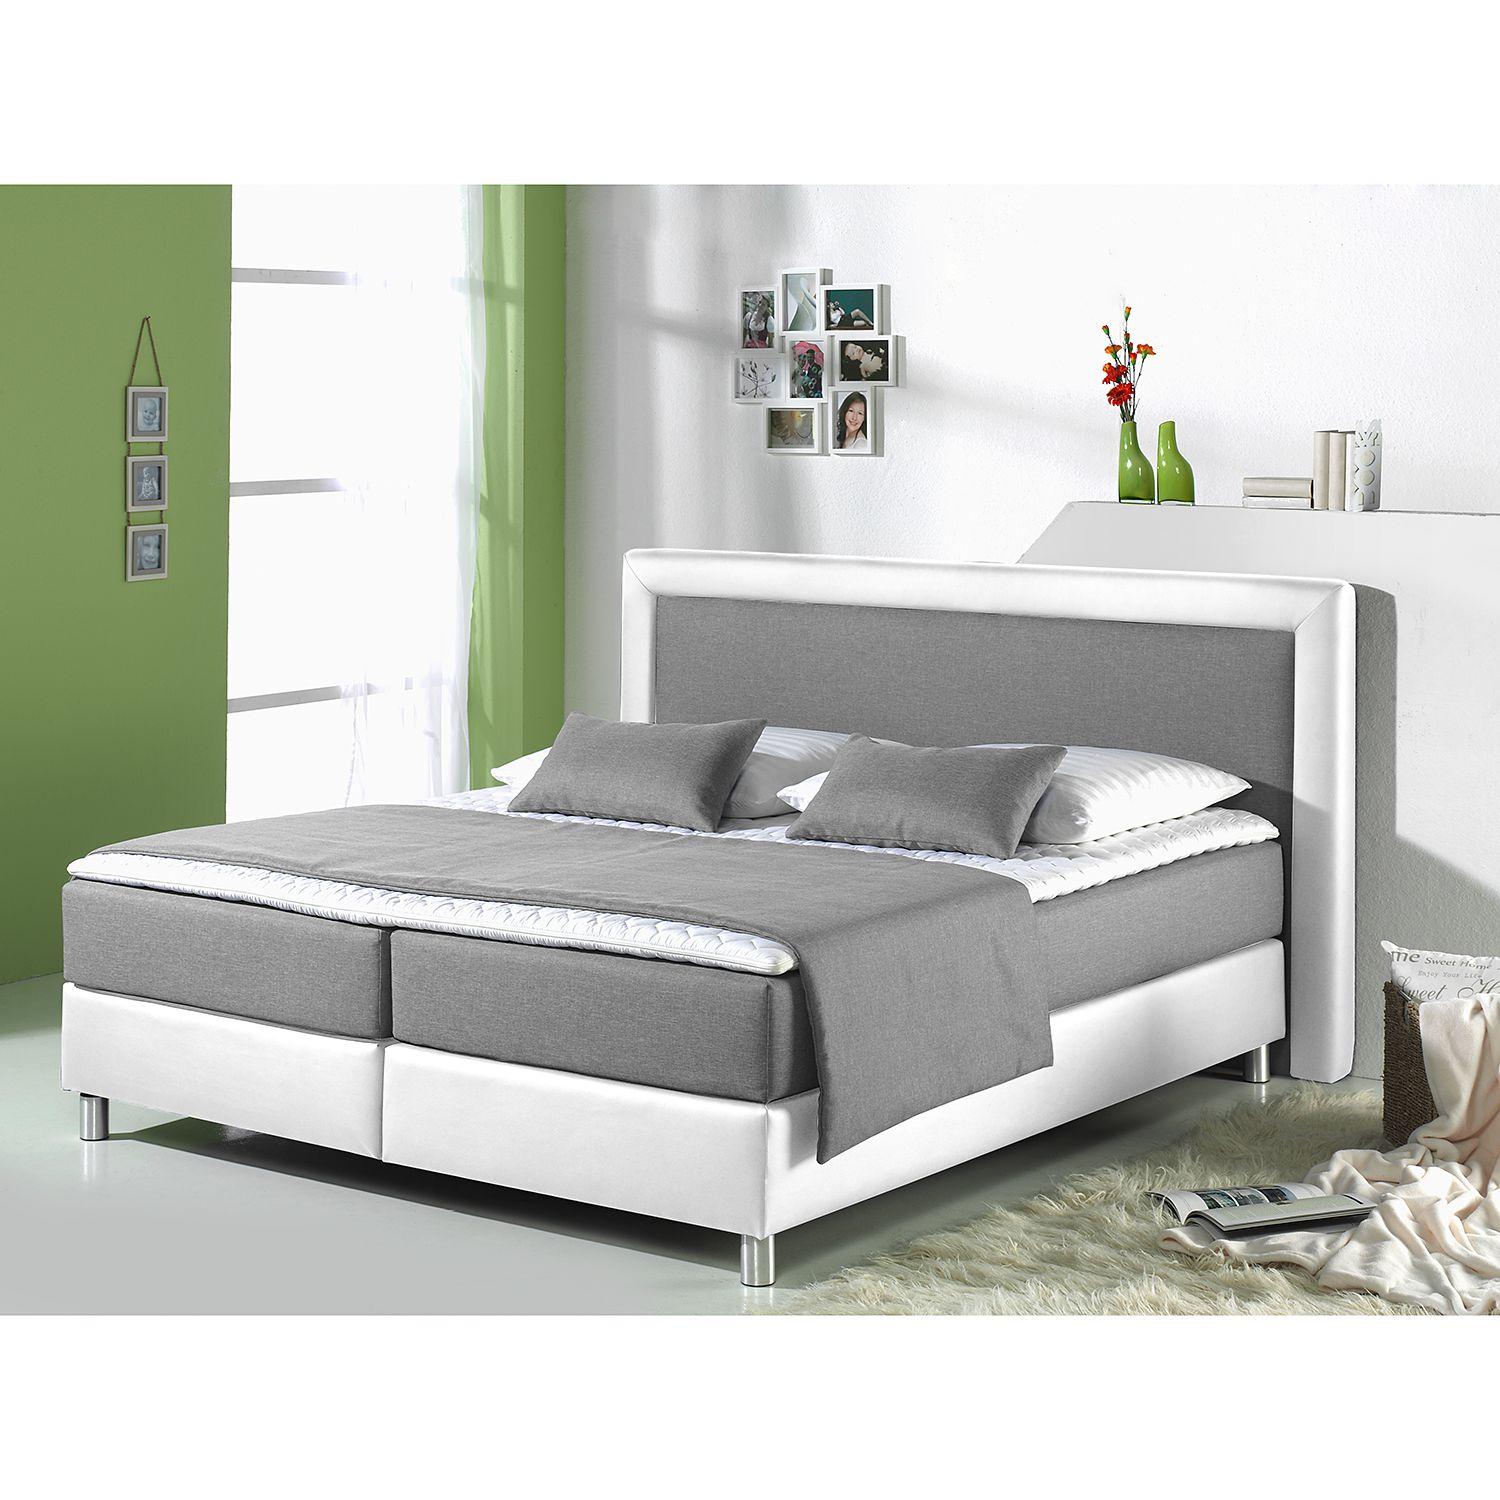 Lit boxspring Vimmerby